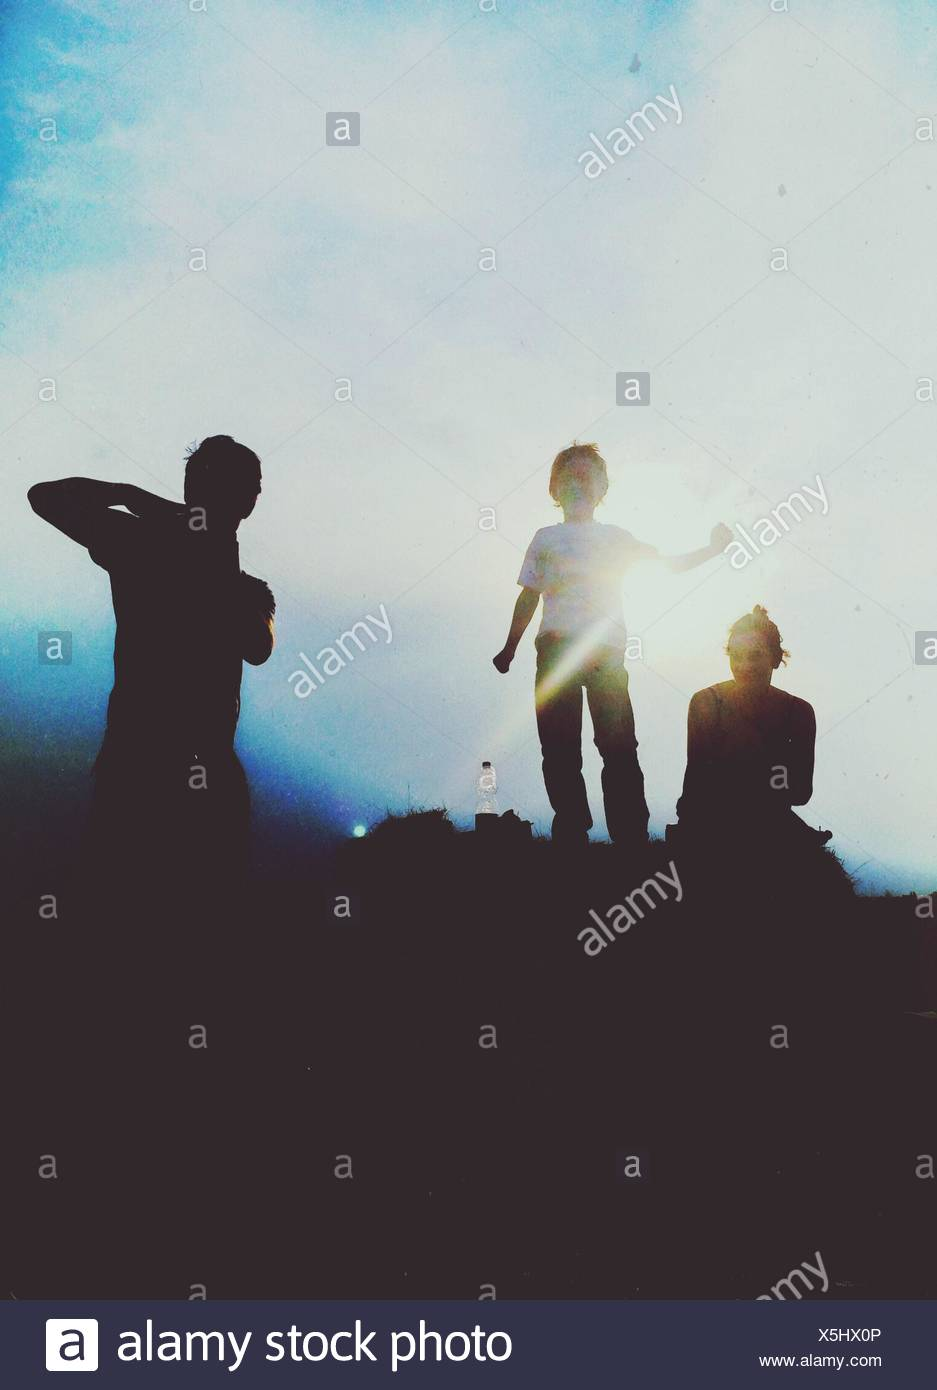 Silhouettes Of People In Sunlight - Stock Image